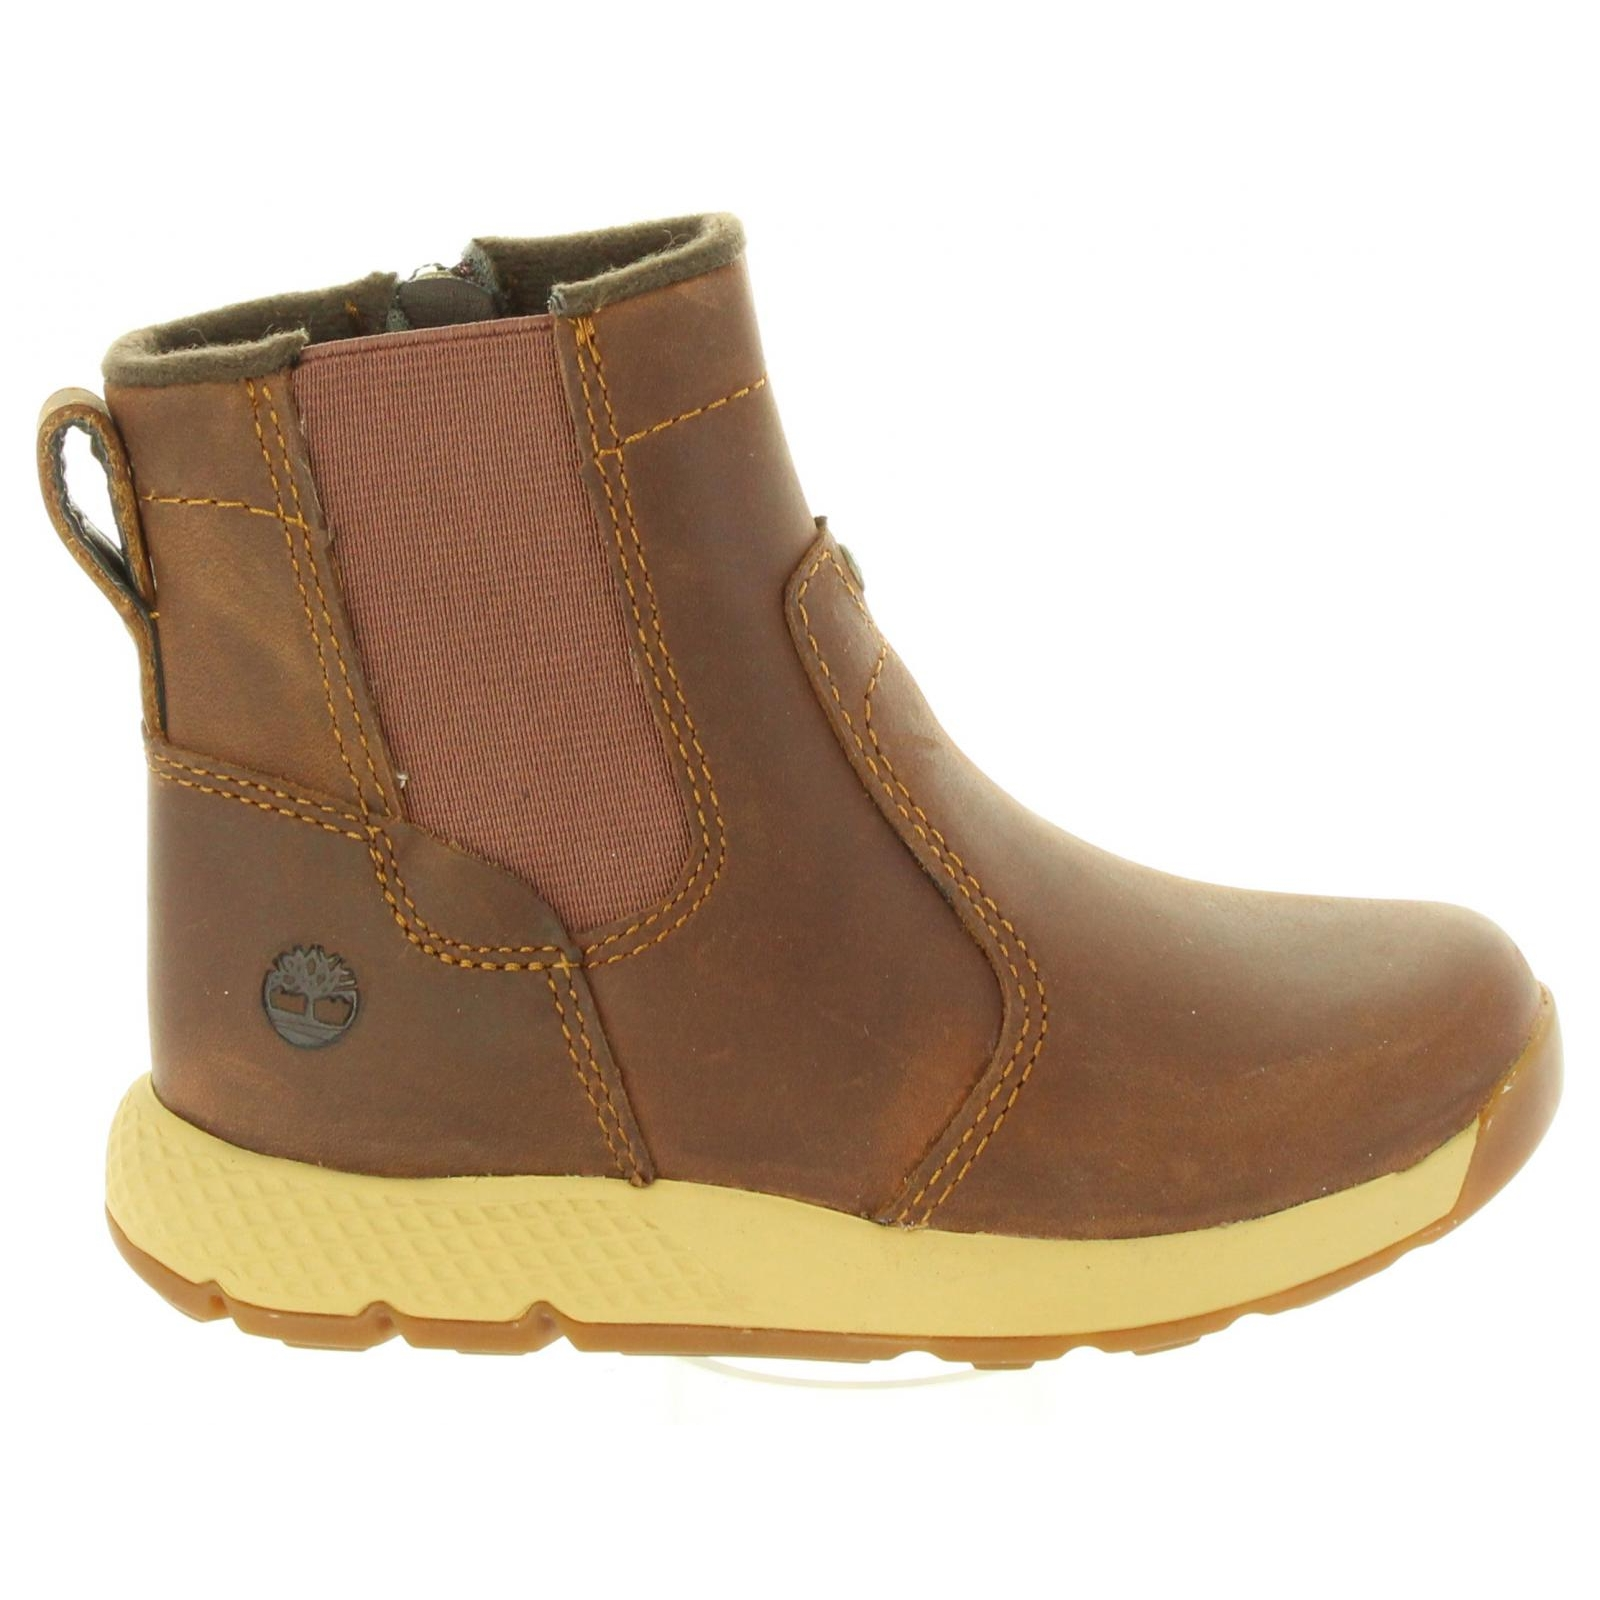 boots for girl TIMBERLAND A1VVF METROROAM MEDIUM BROWN Size 22